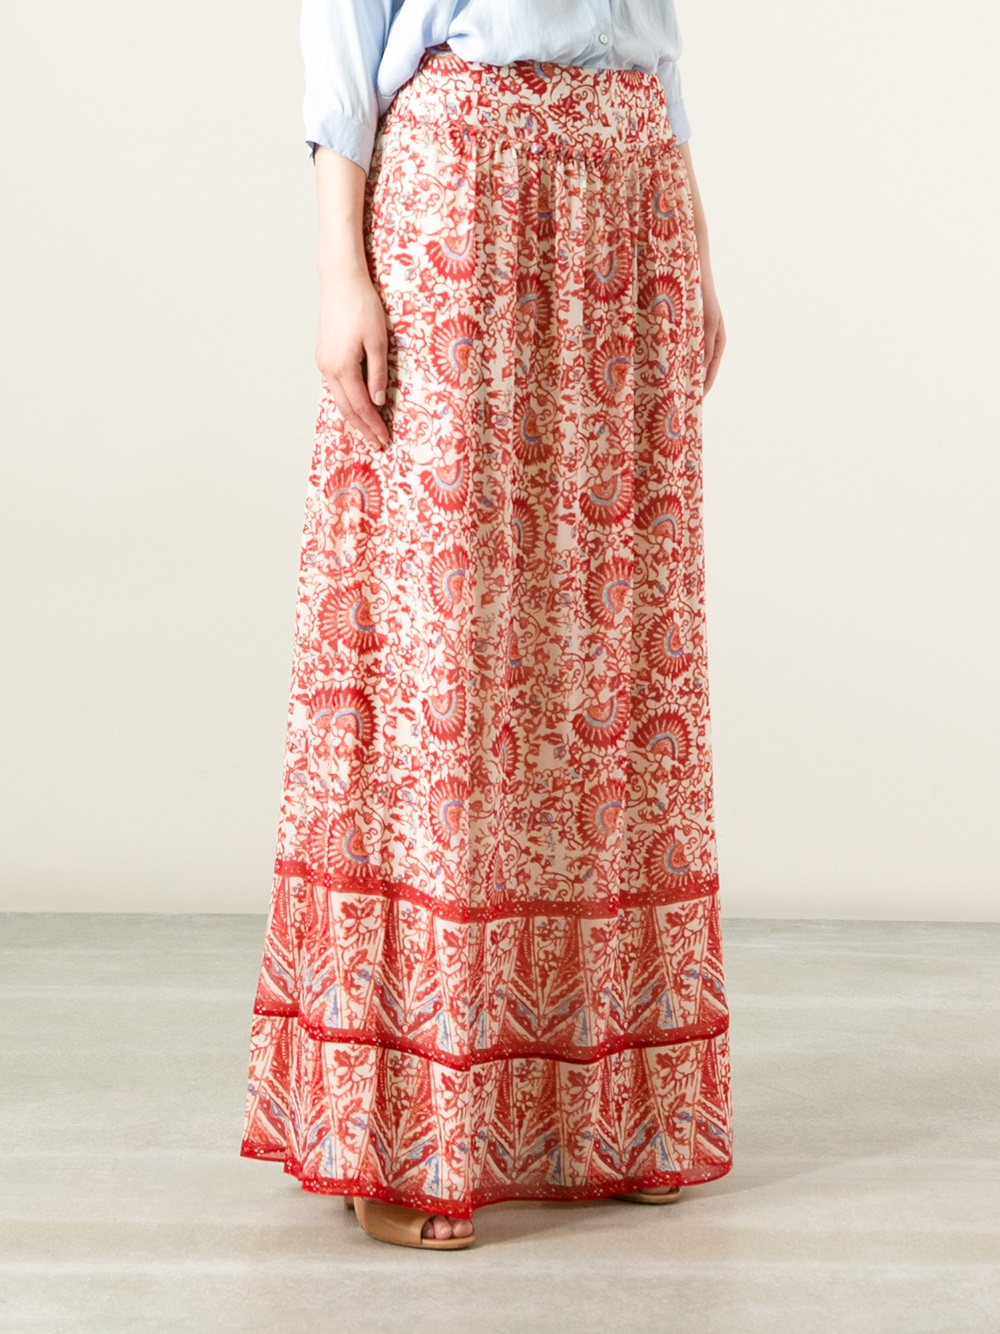 Tory burch Floral Print Maxi Skirt in Red | Lyst